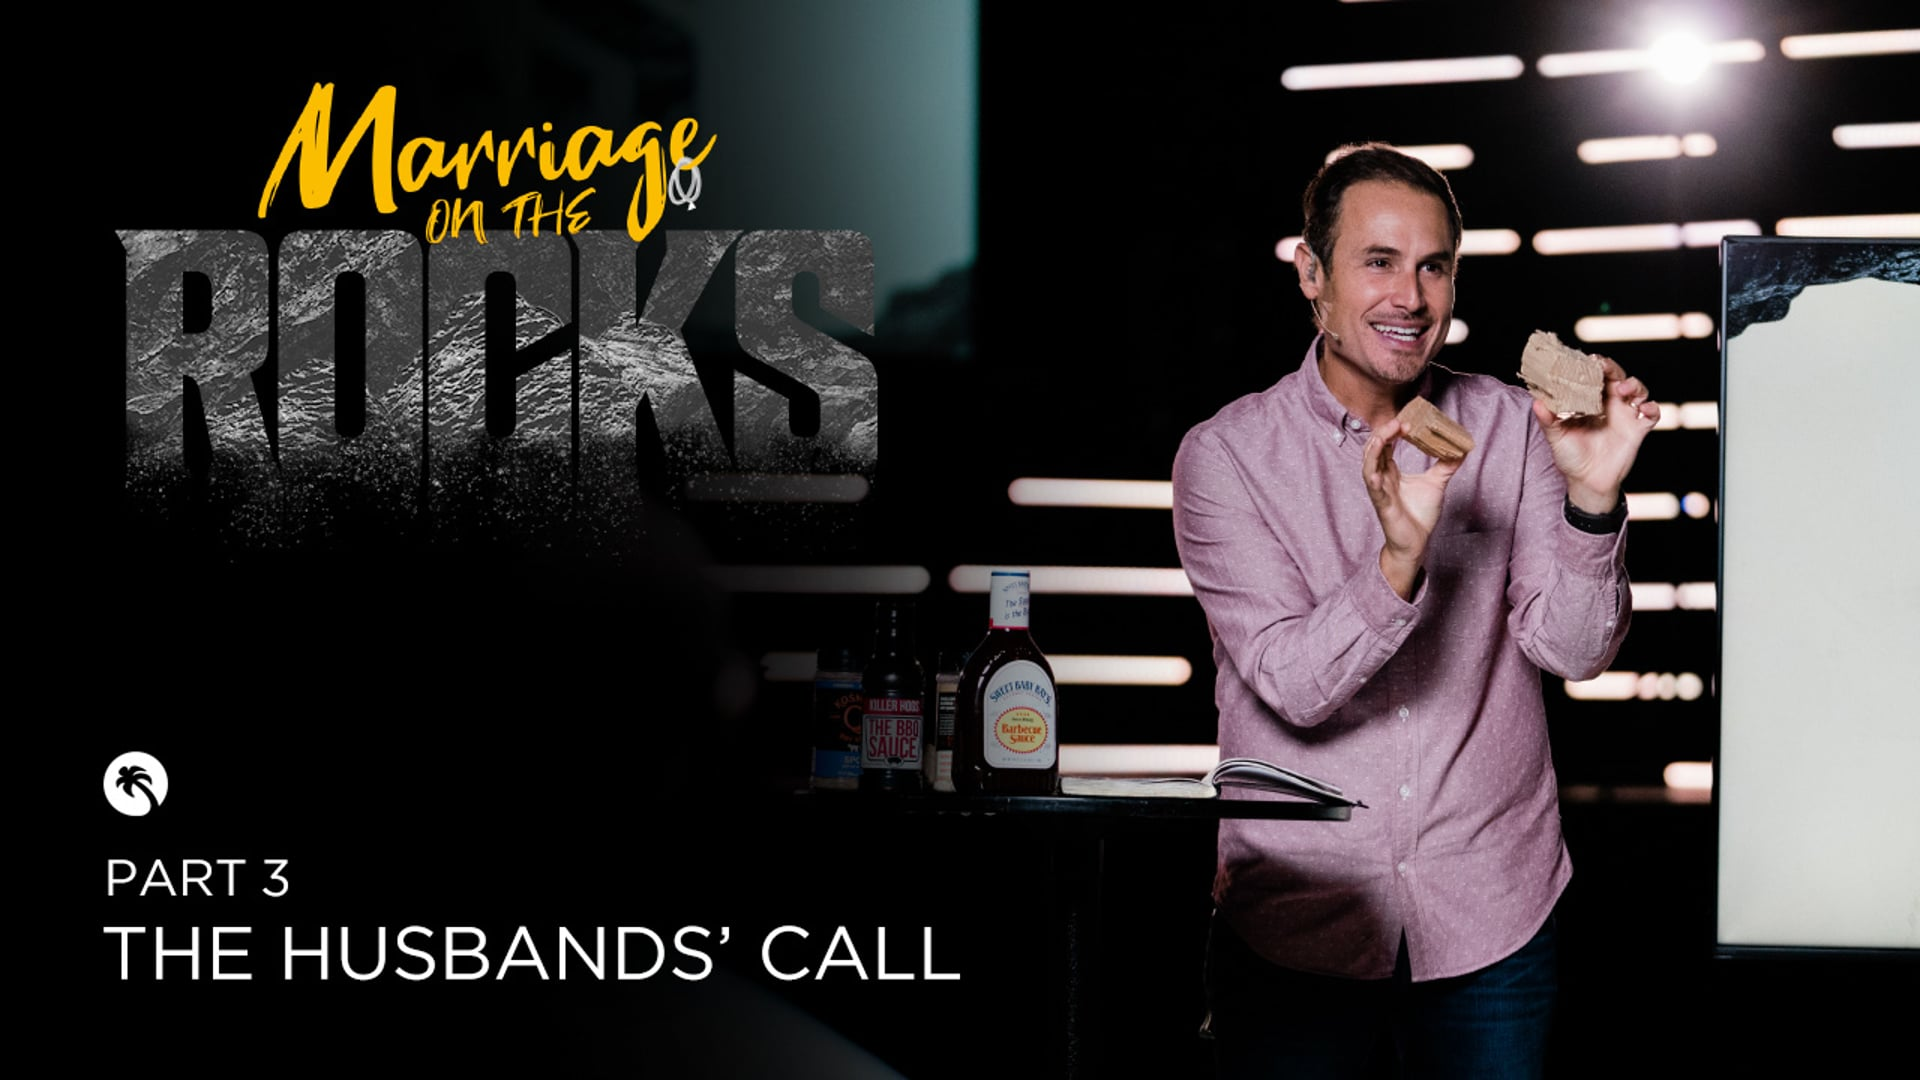 Marriage on the Rocks Part 3 - The Husbands' Call (Message)